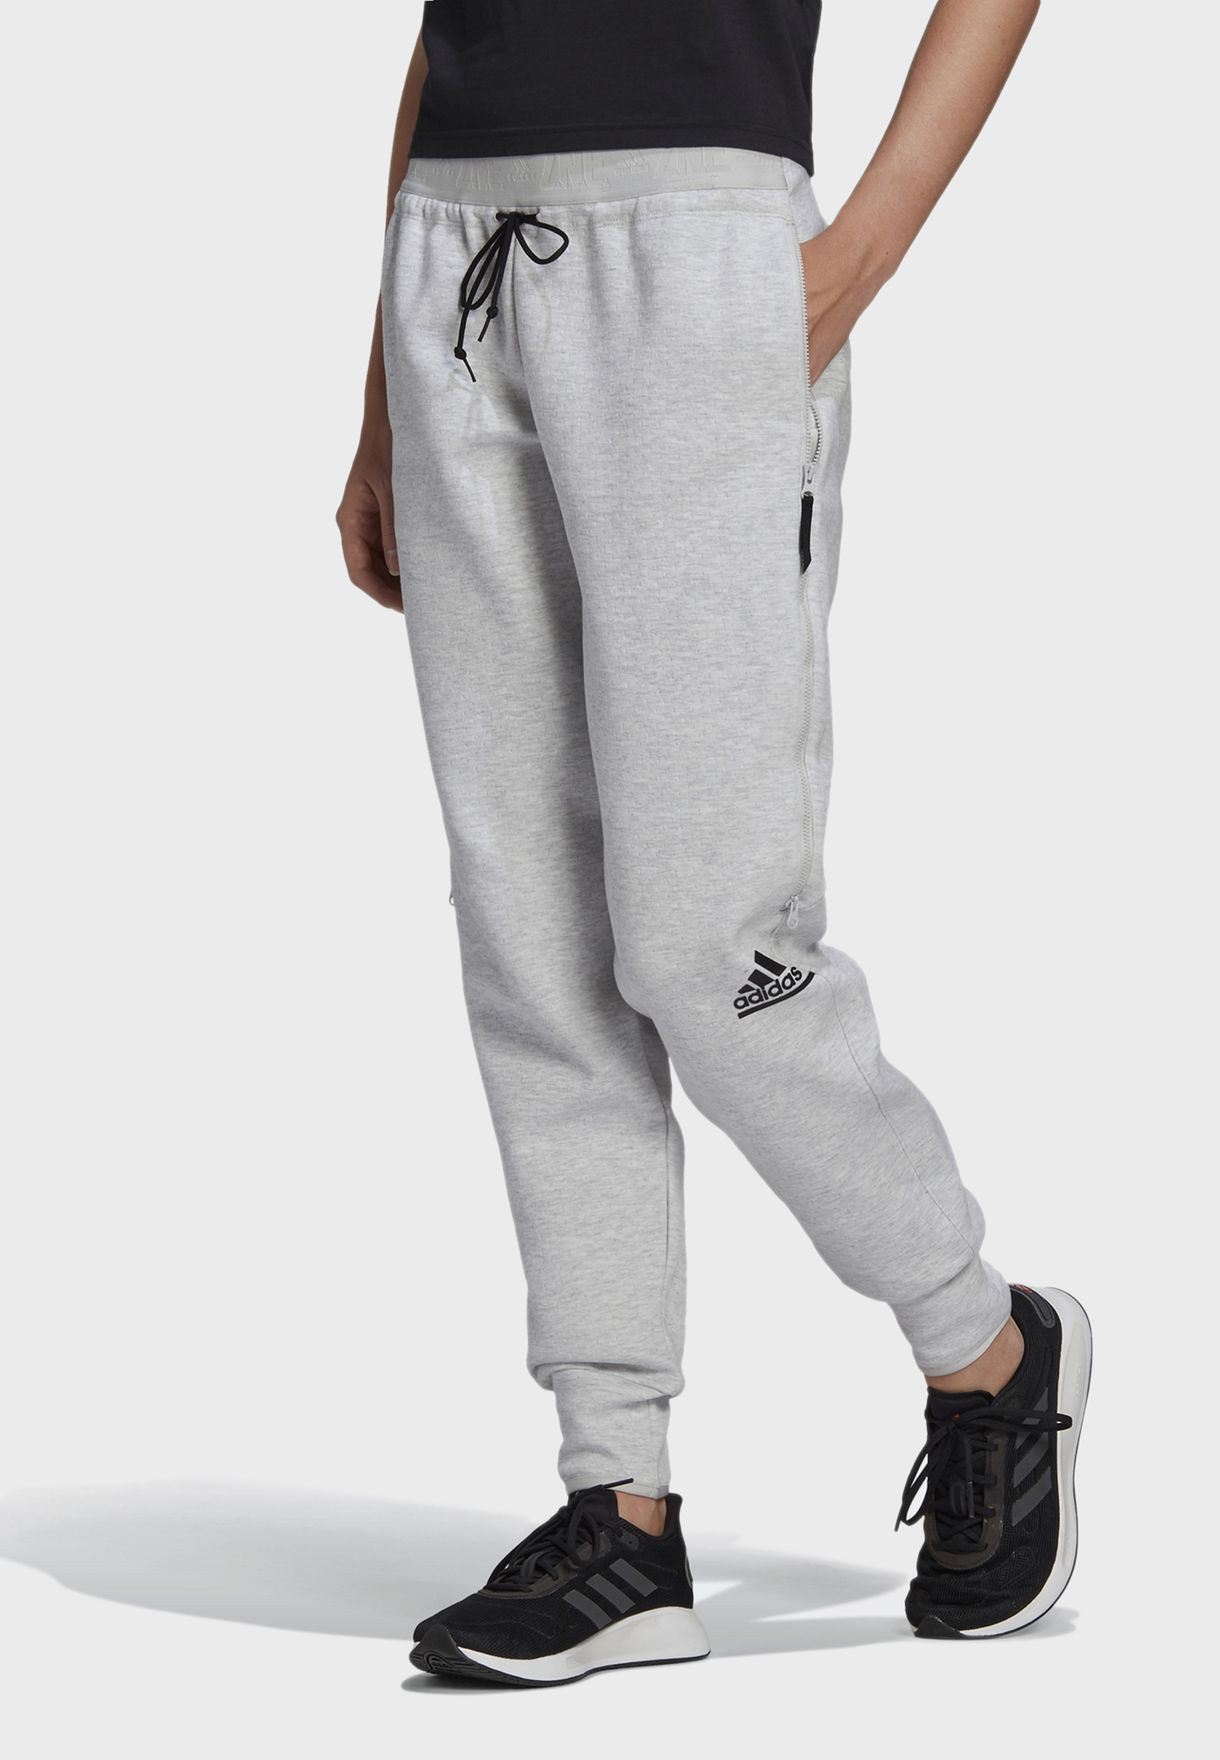 Z.N.E Cuffed Sweatpants